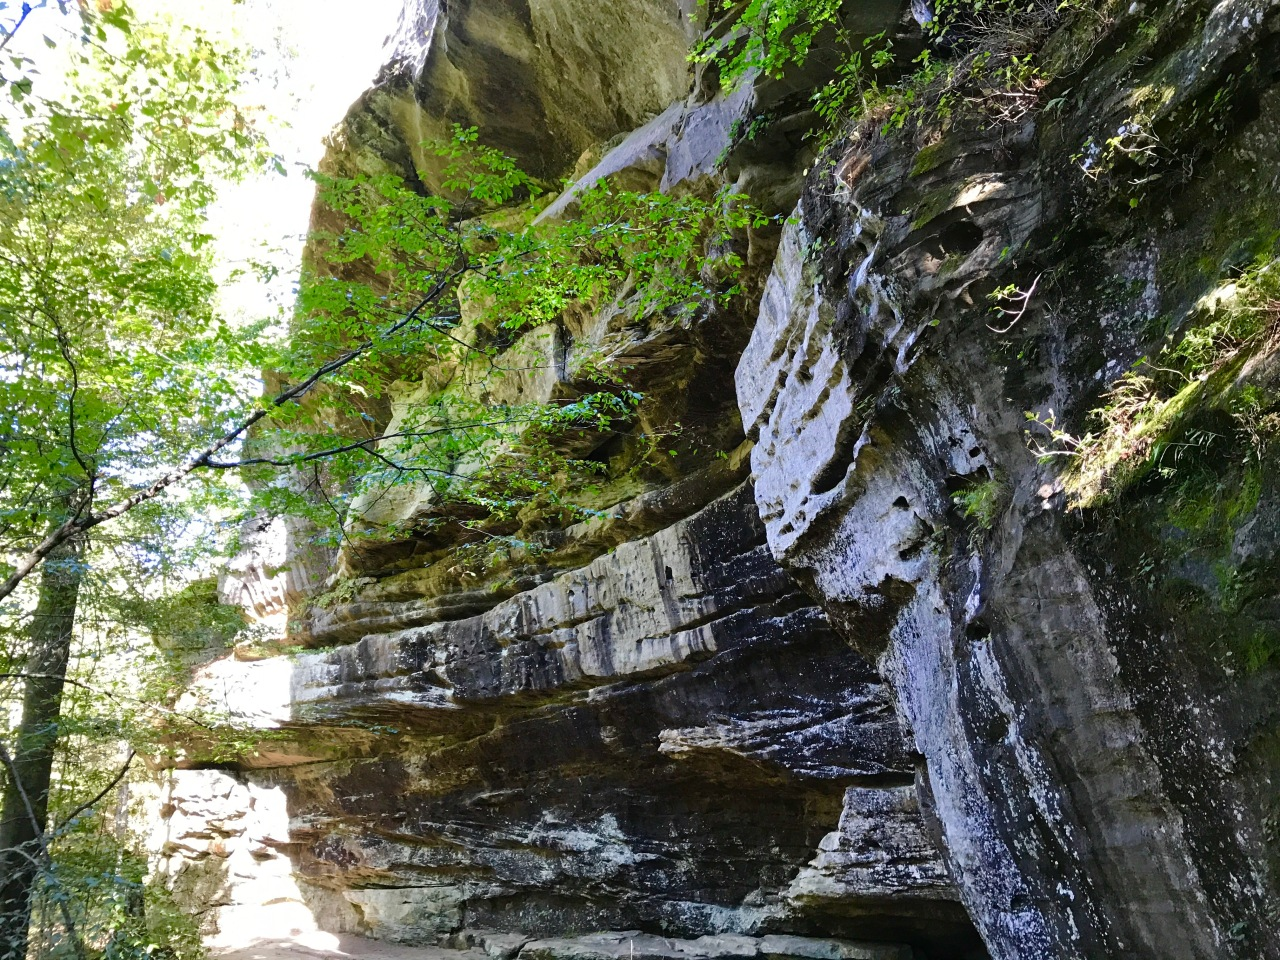 Rim Rock Trail – Illinois